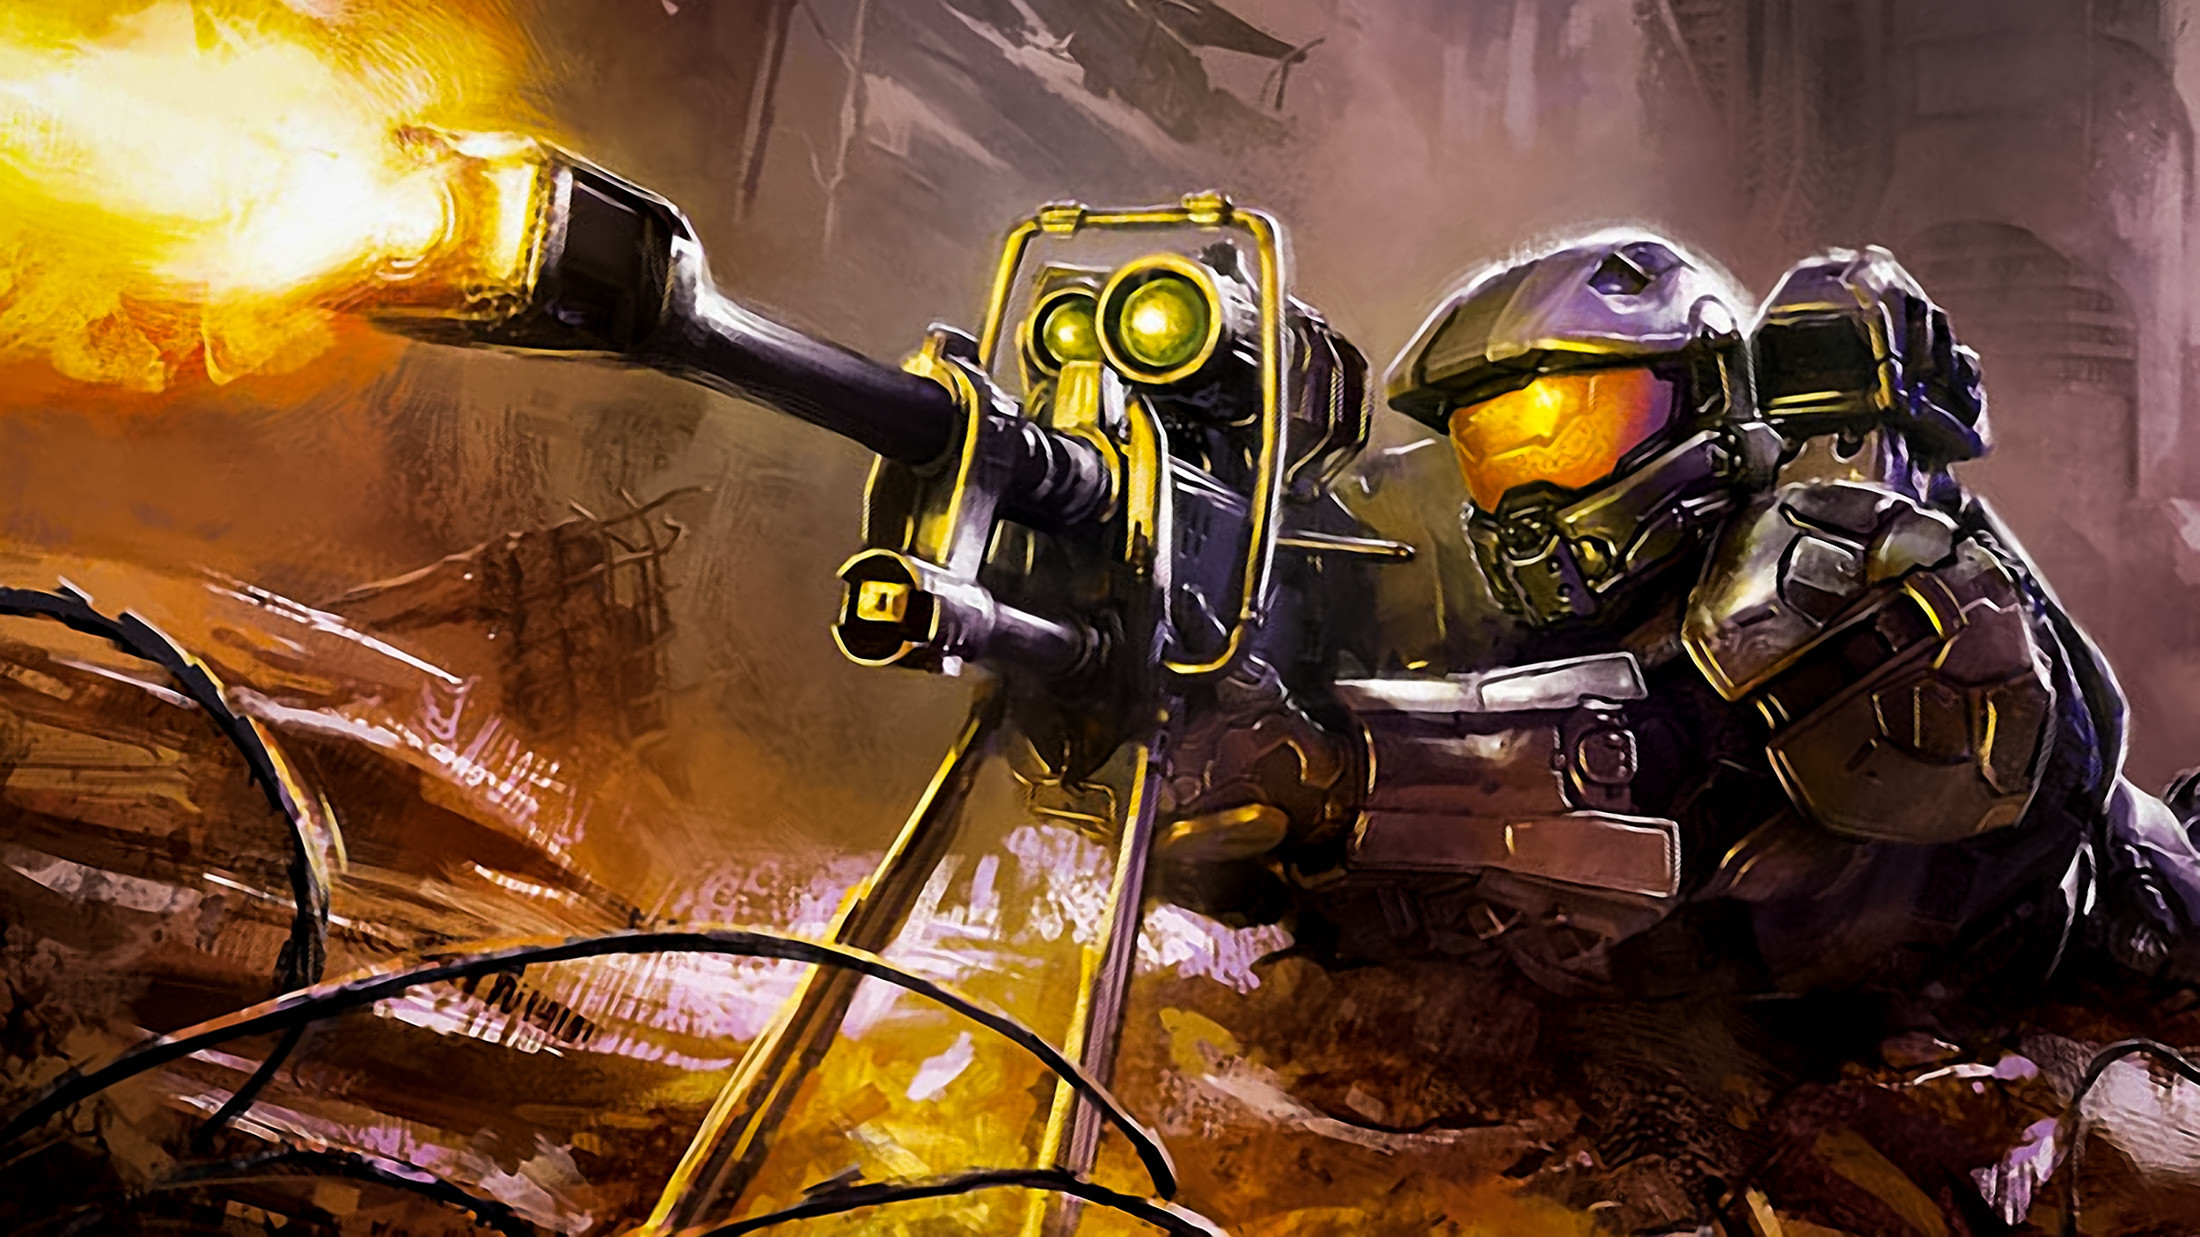 Halo Master Chief Wallpapers Amazing Wallpaperz   HD Wallpapers   Pinterest    Hd wallpaper and Wallpaper